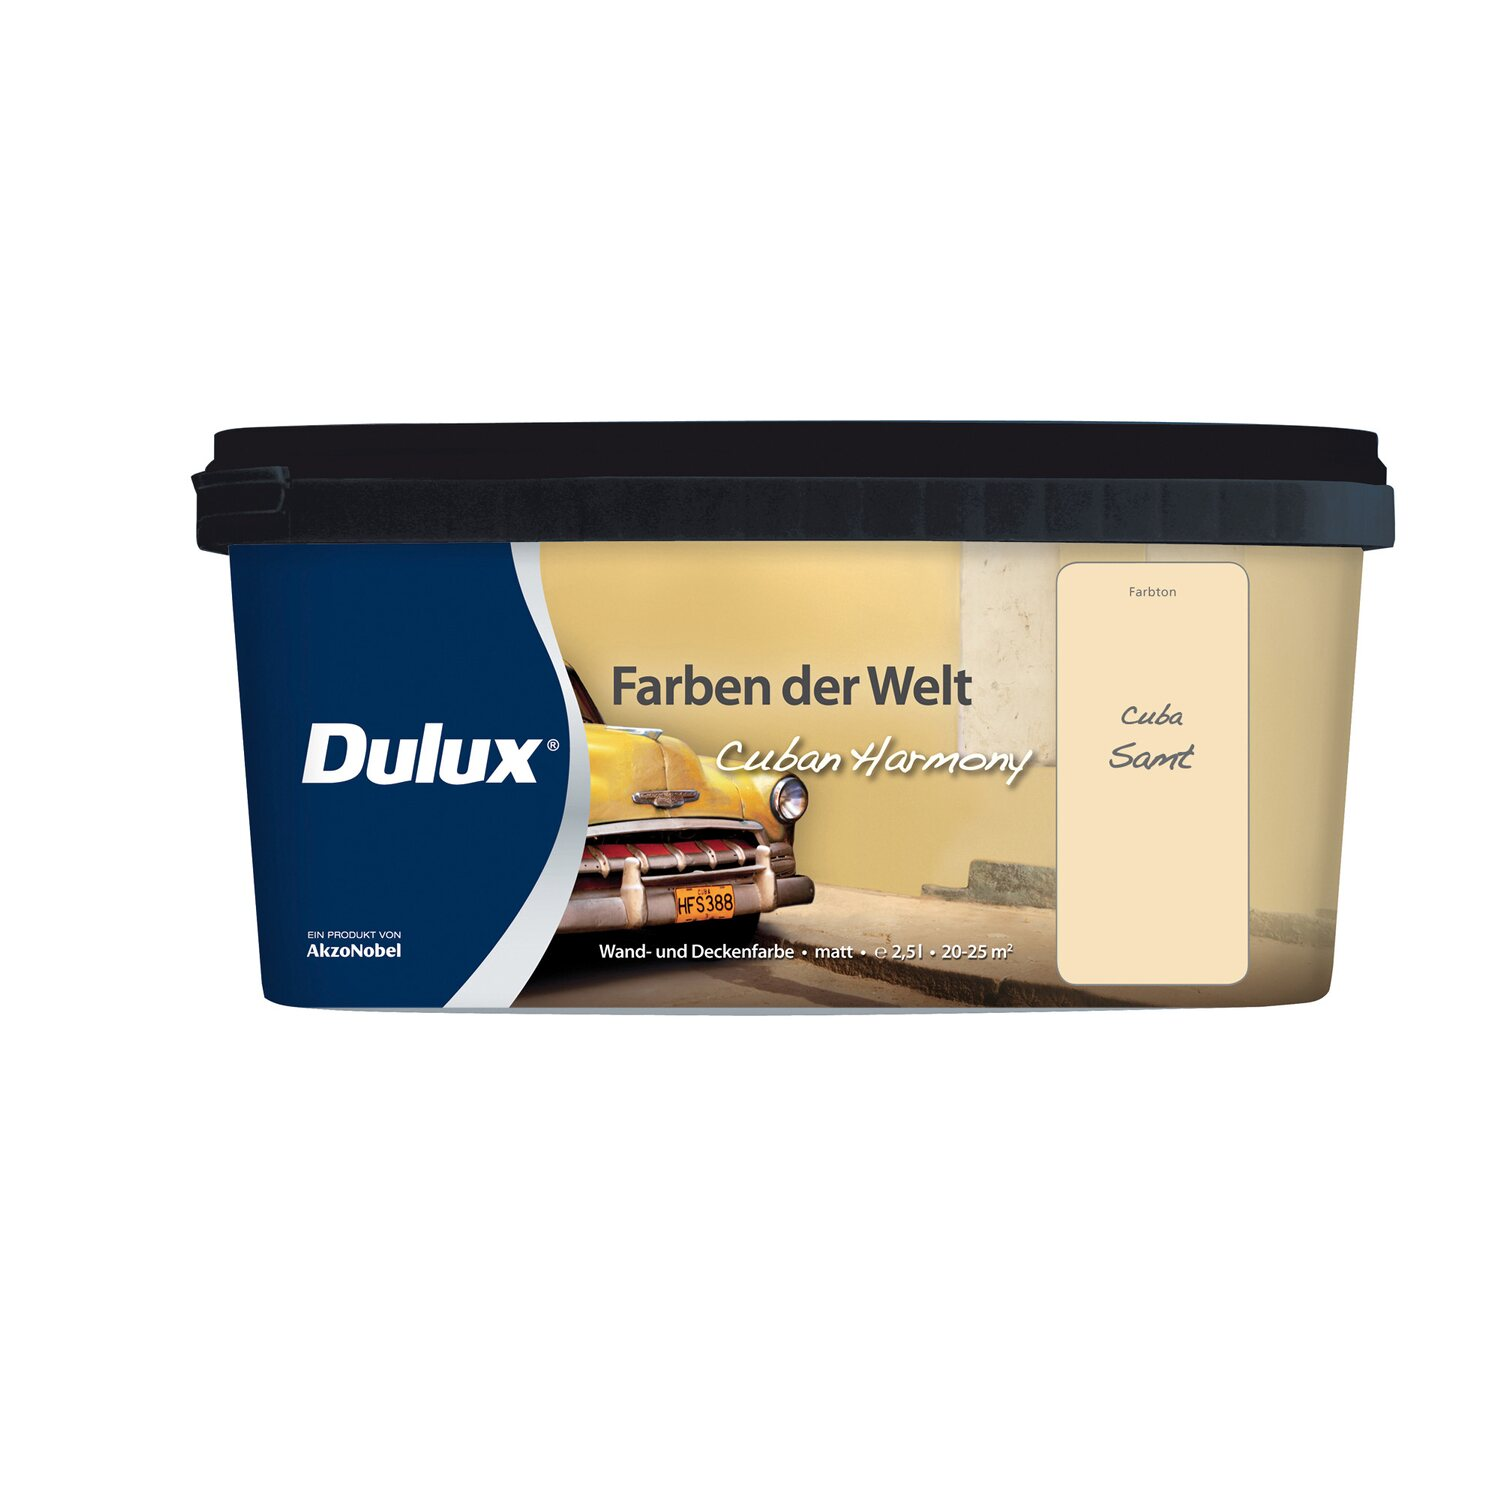 dulux wand und deckenfarbe farben der welt cuba samt 2 5. Black Bedroom Furniture Sets. Home Design Ideas